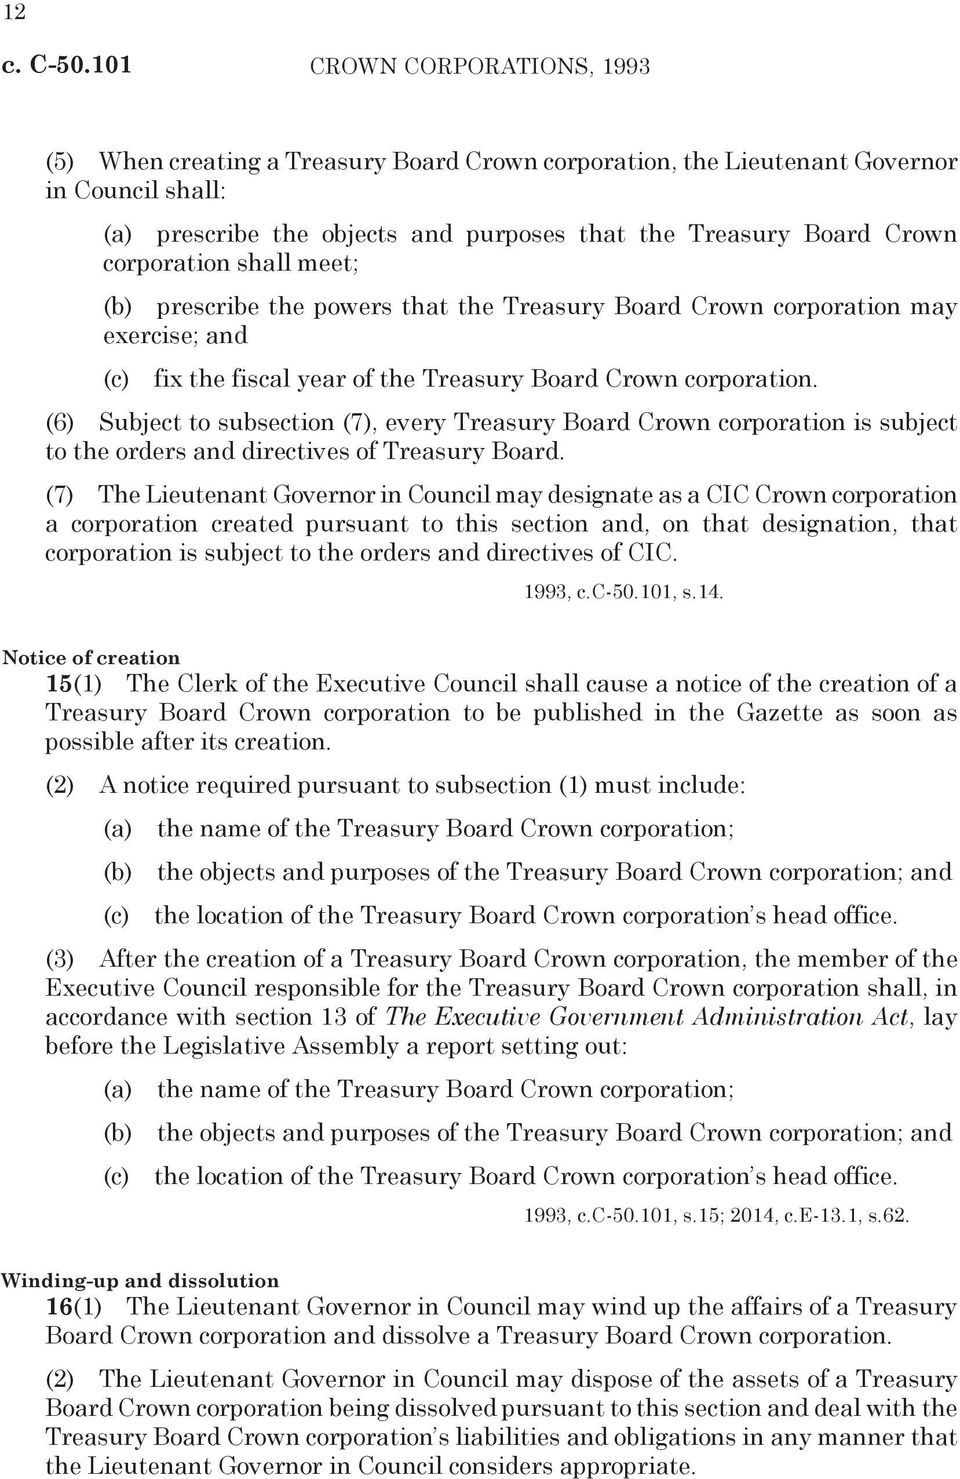 (6) Subject to subsection (7), every Treasury Board Crown corporation is subject to the orders and directives of Treasury Board.